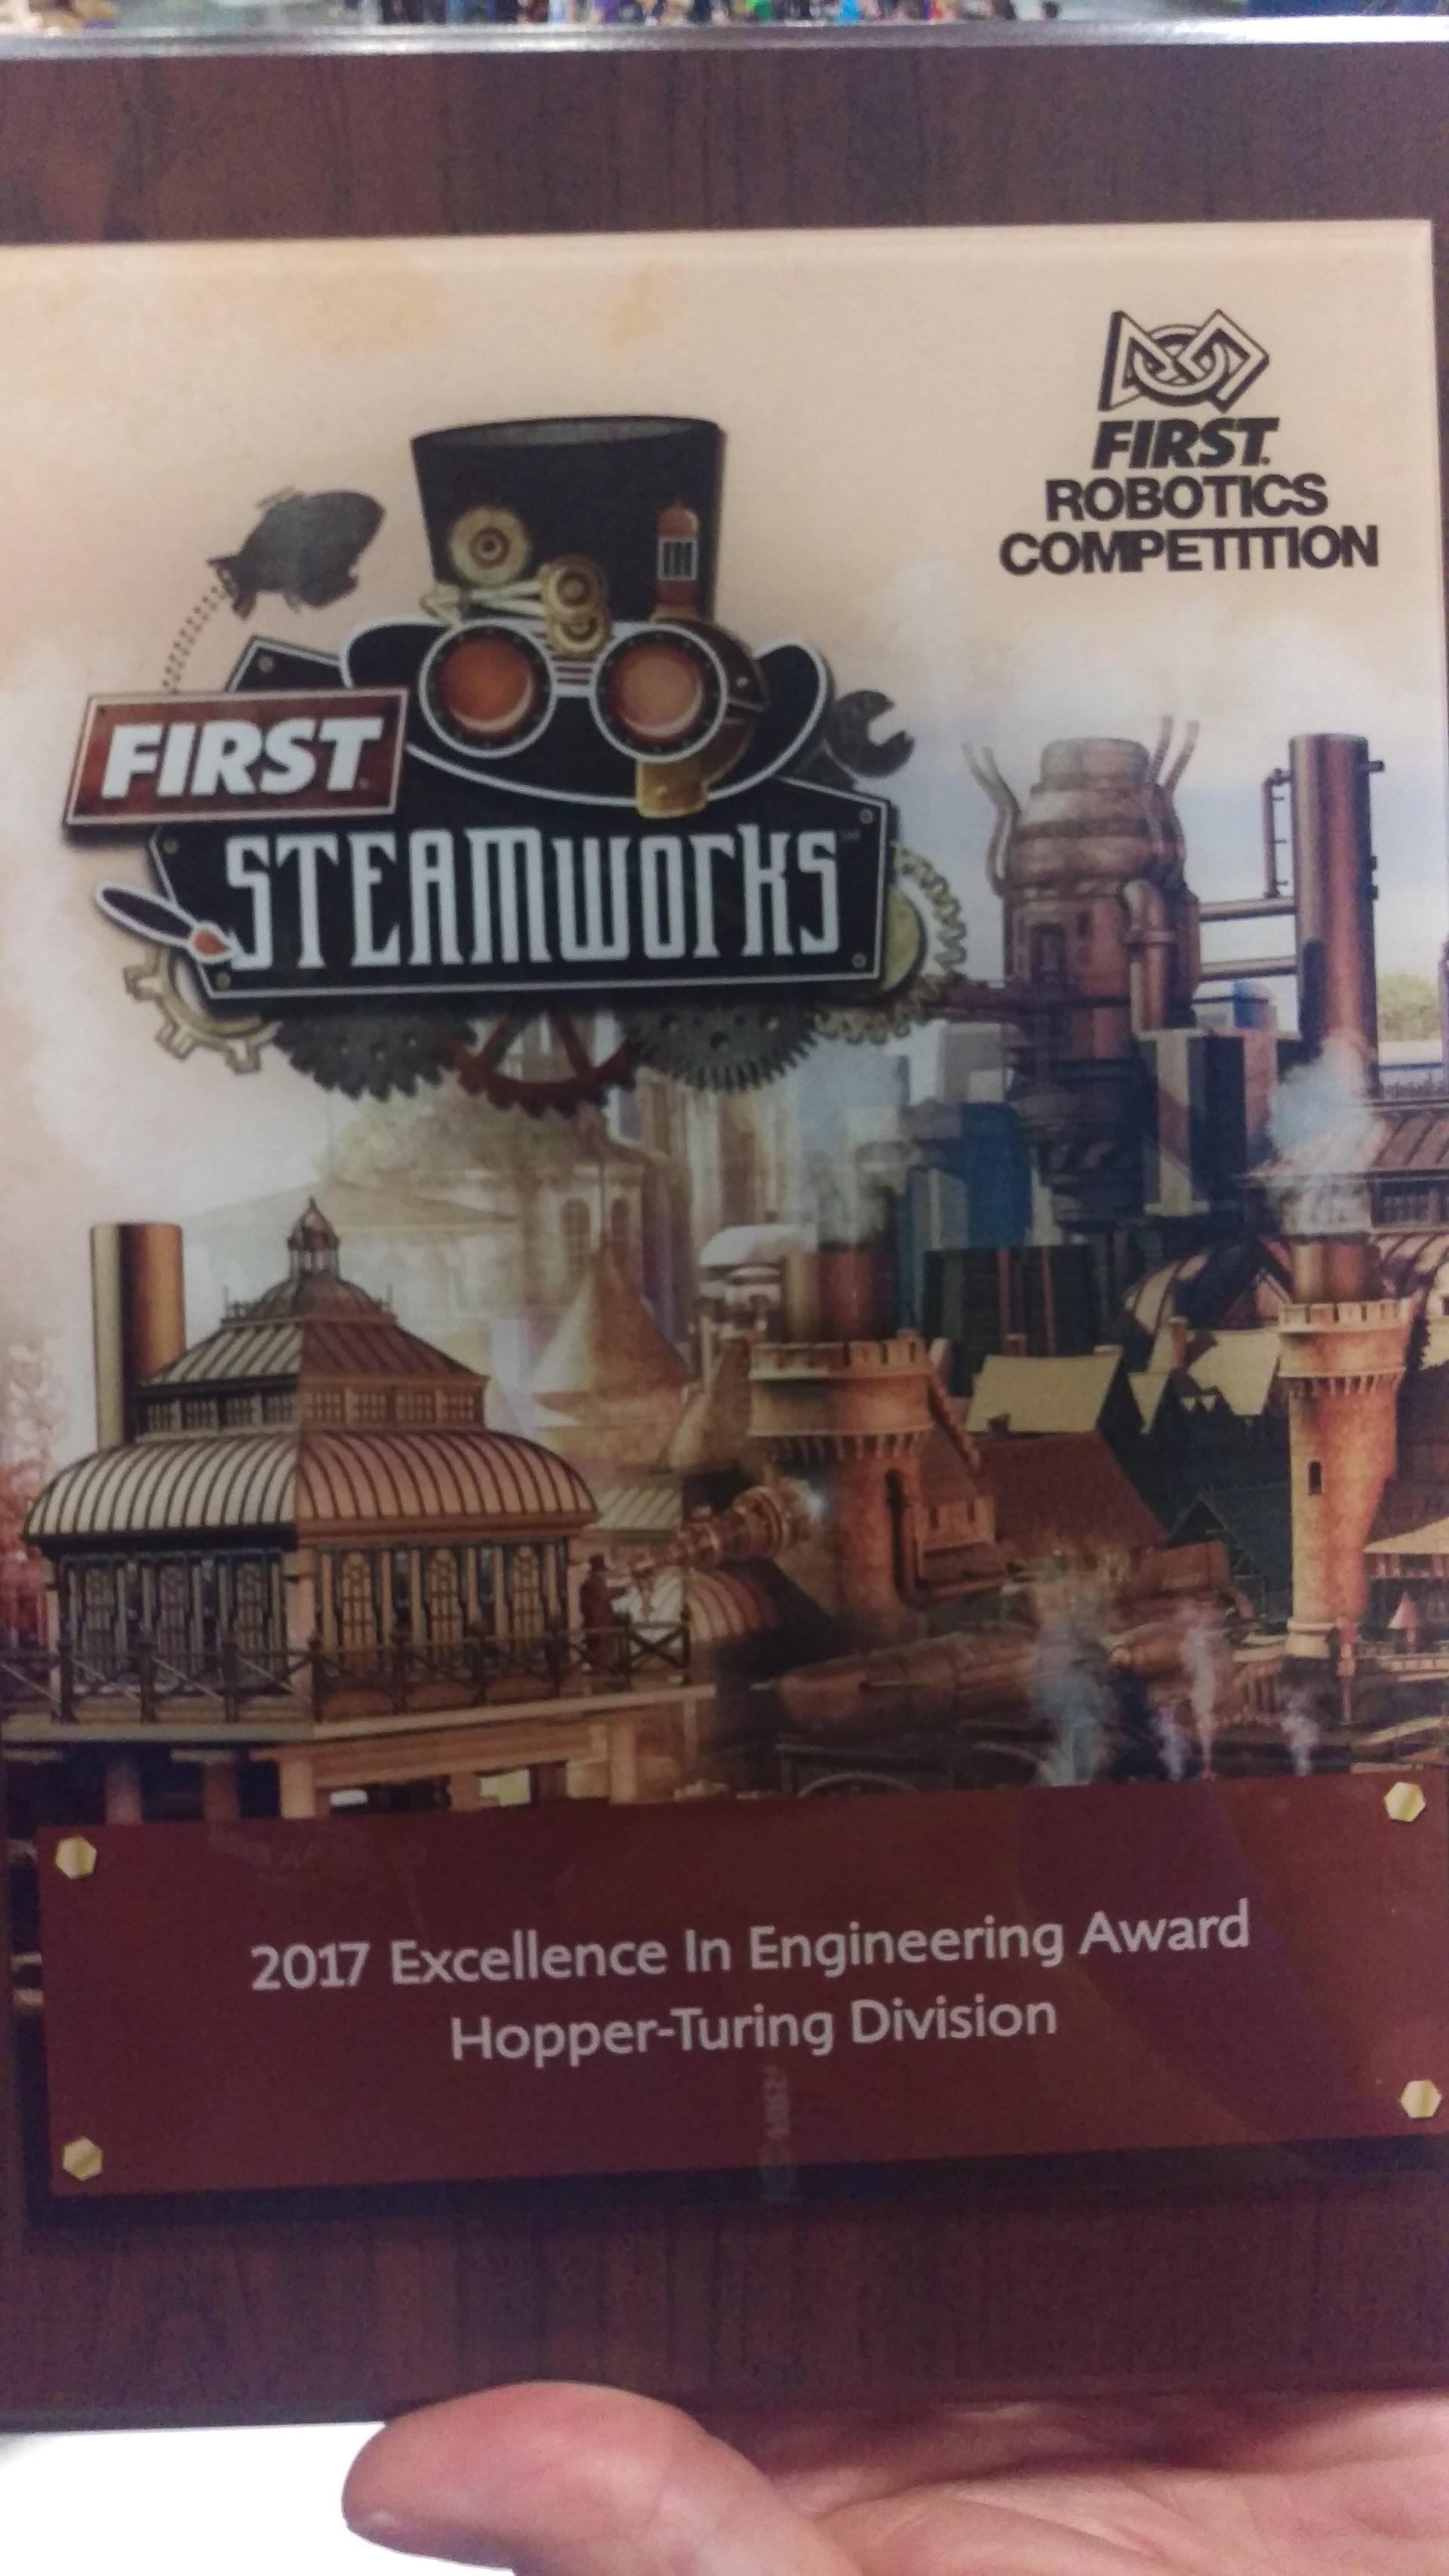 Excellence in Engineering Award from 201 Houston Championships